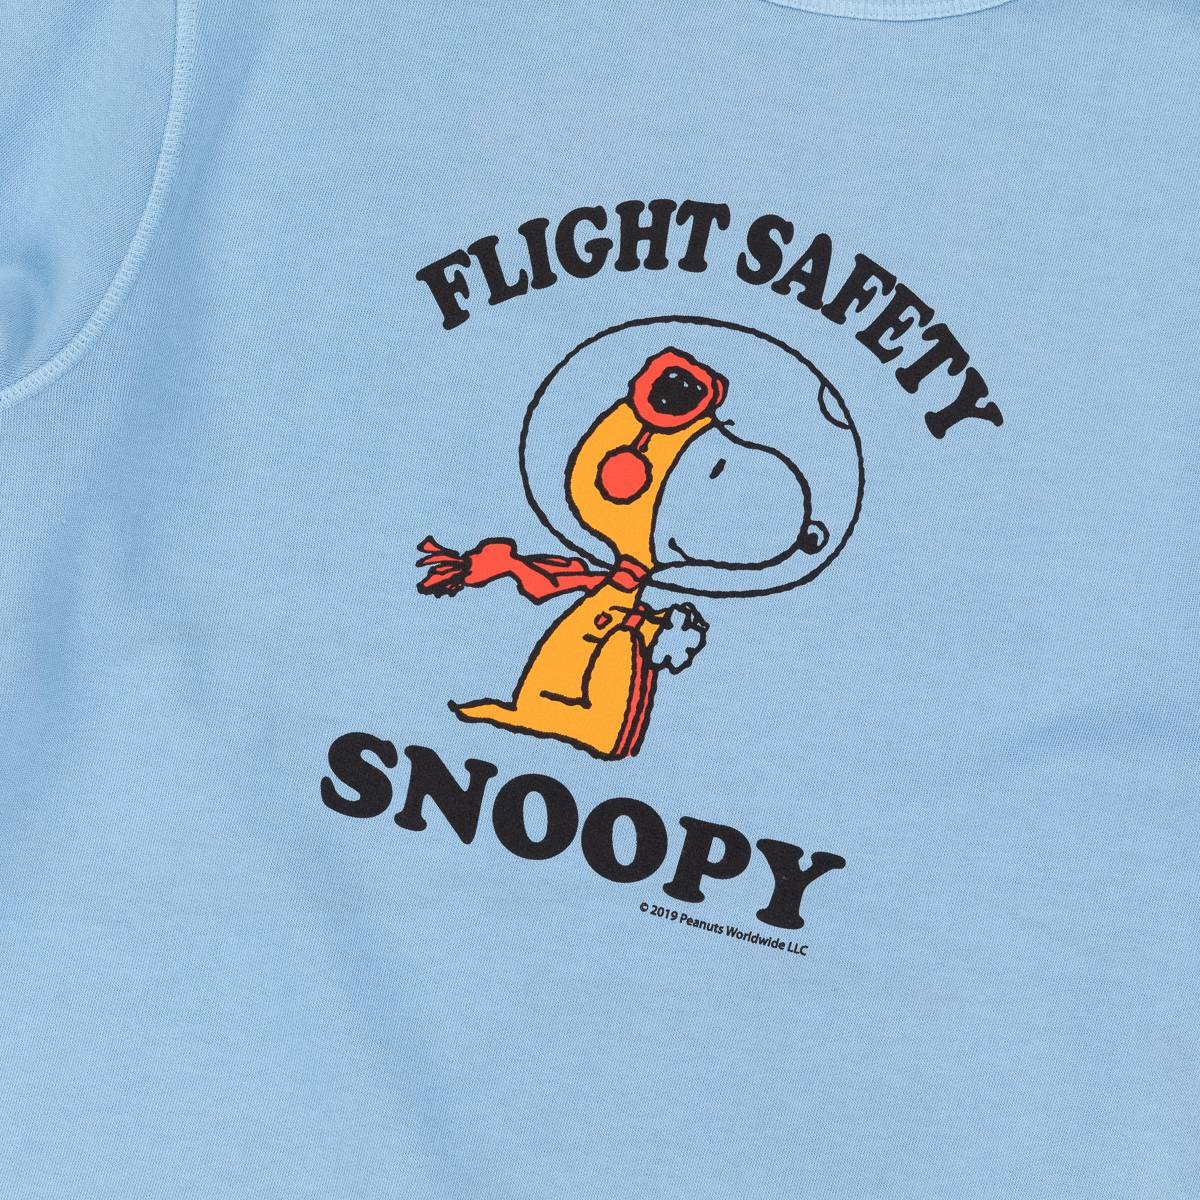 Snoopy Flight Safety Sweatshirt